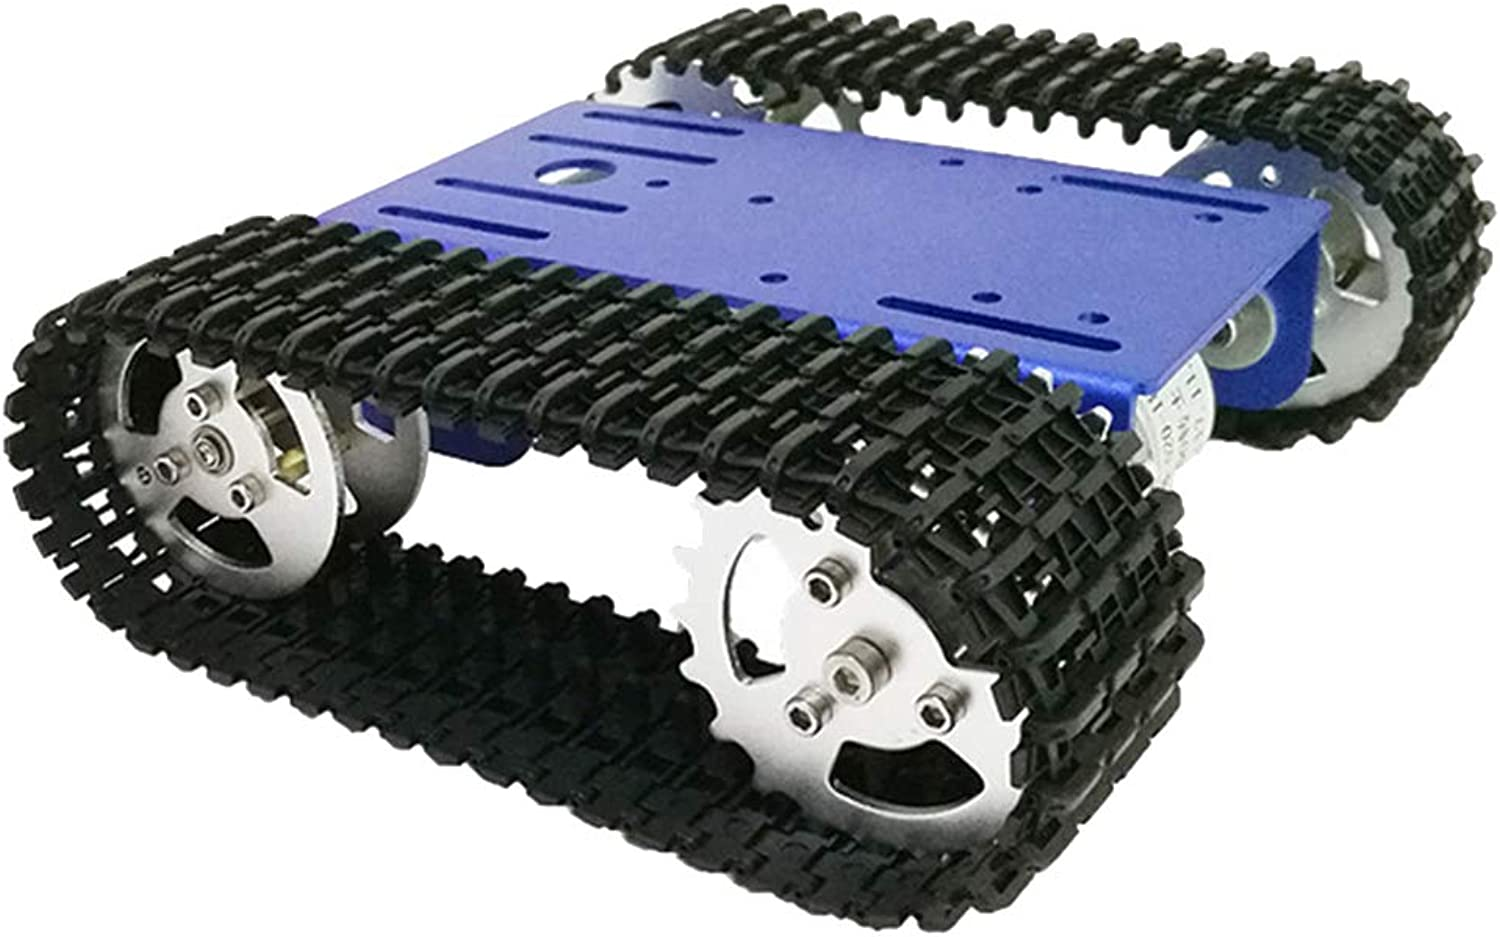 Blesiya Mini T101 Aluminum Alloy Strong Motor Tank Car Chassis Track Crawler Kit with Two Motor for Arduino DIY Partbluee